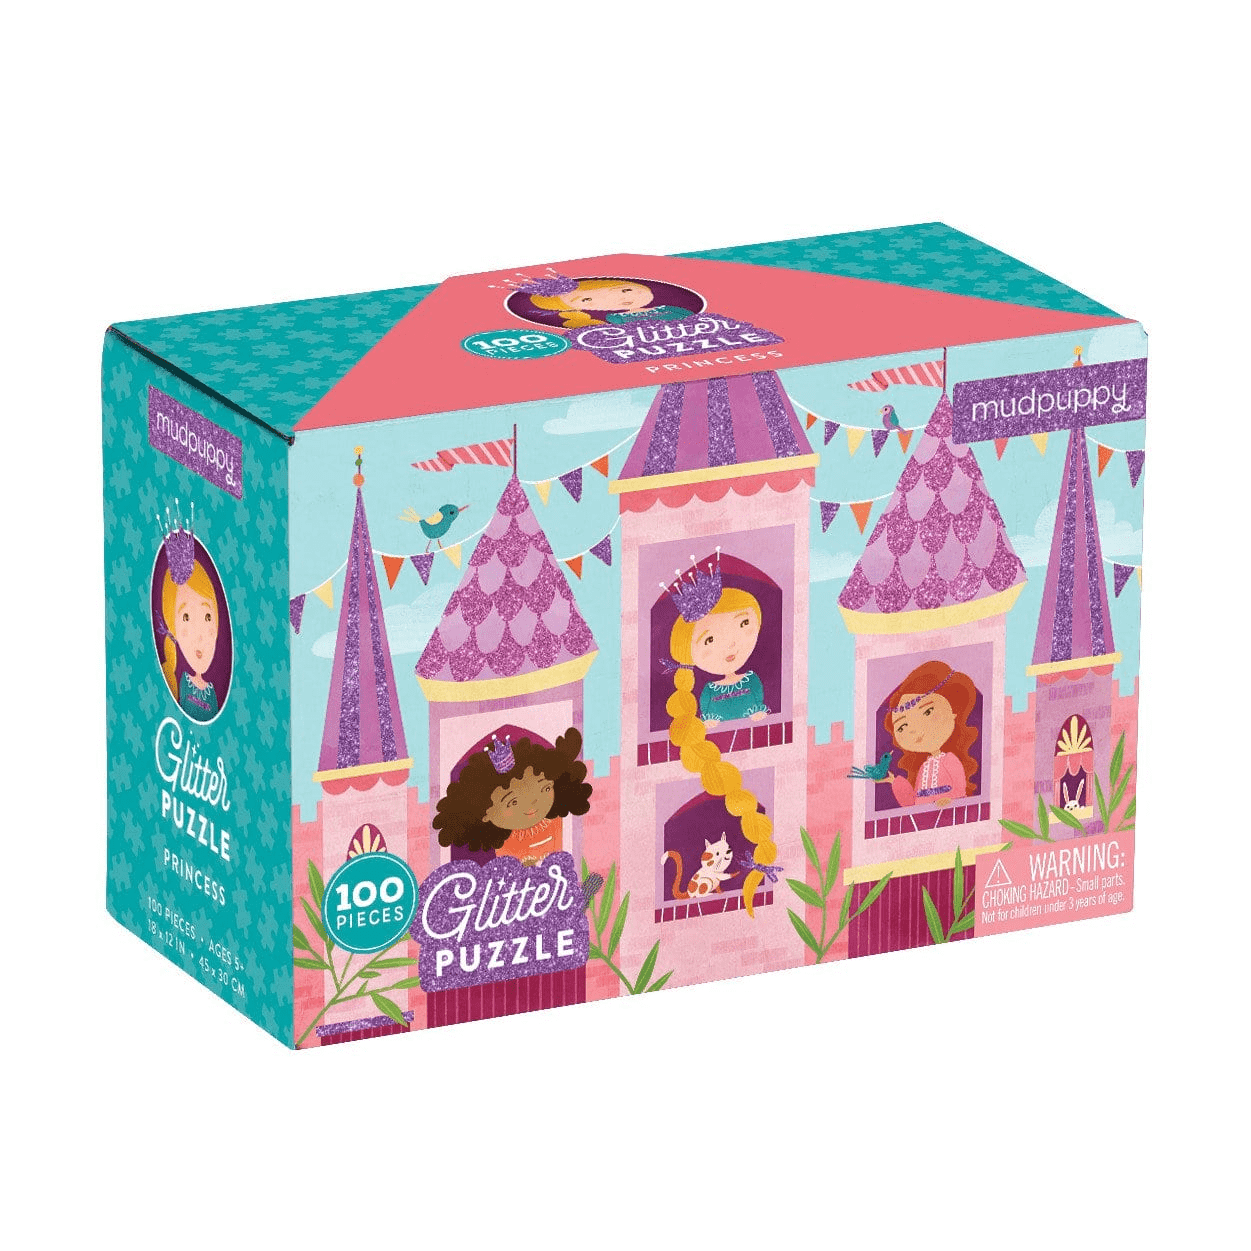 Glitter Princess Puzzle by Mudpuppy ~ 100 pieces